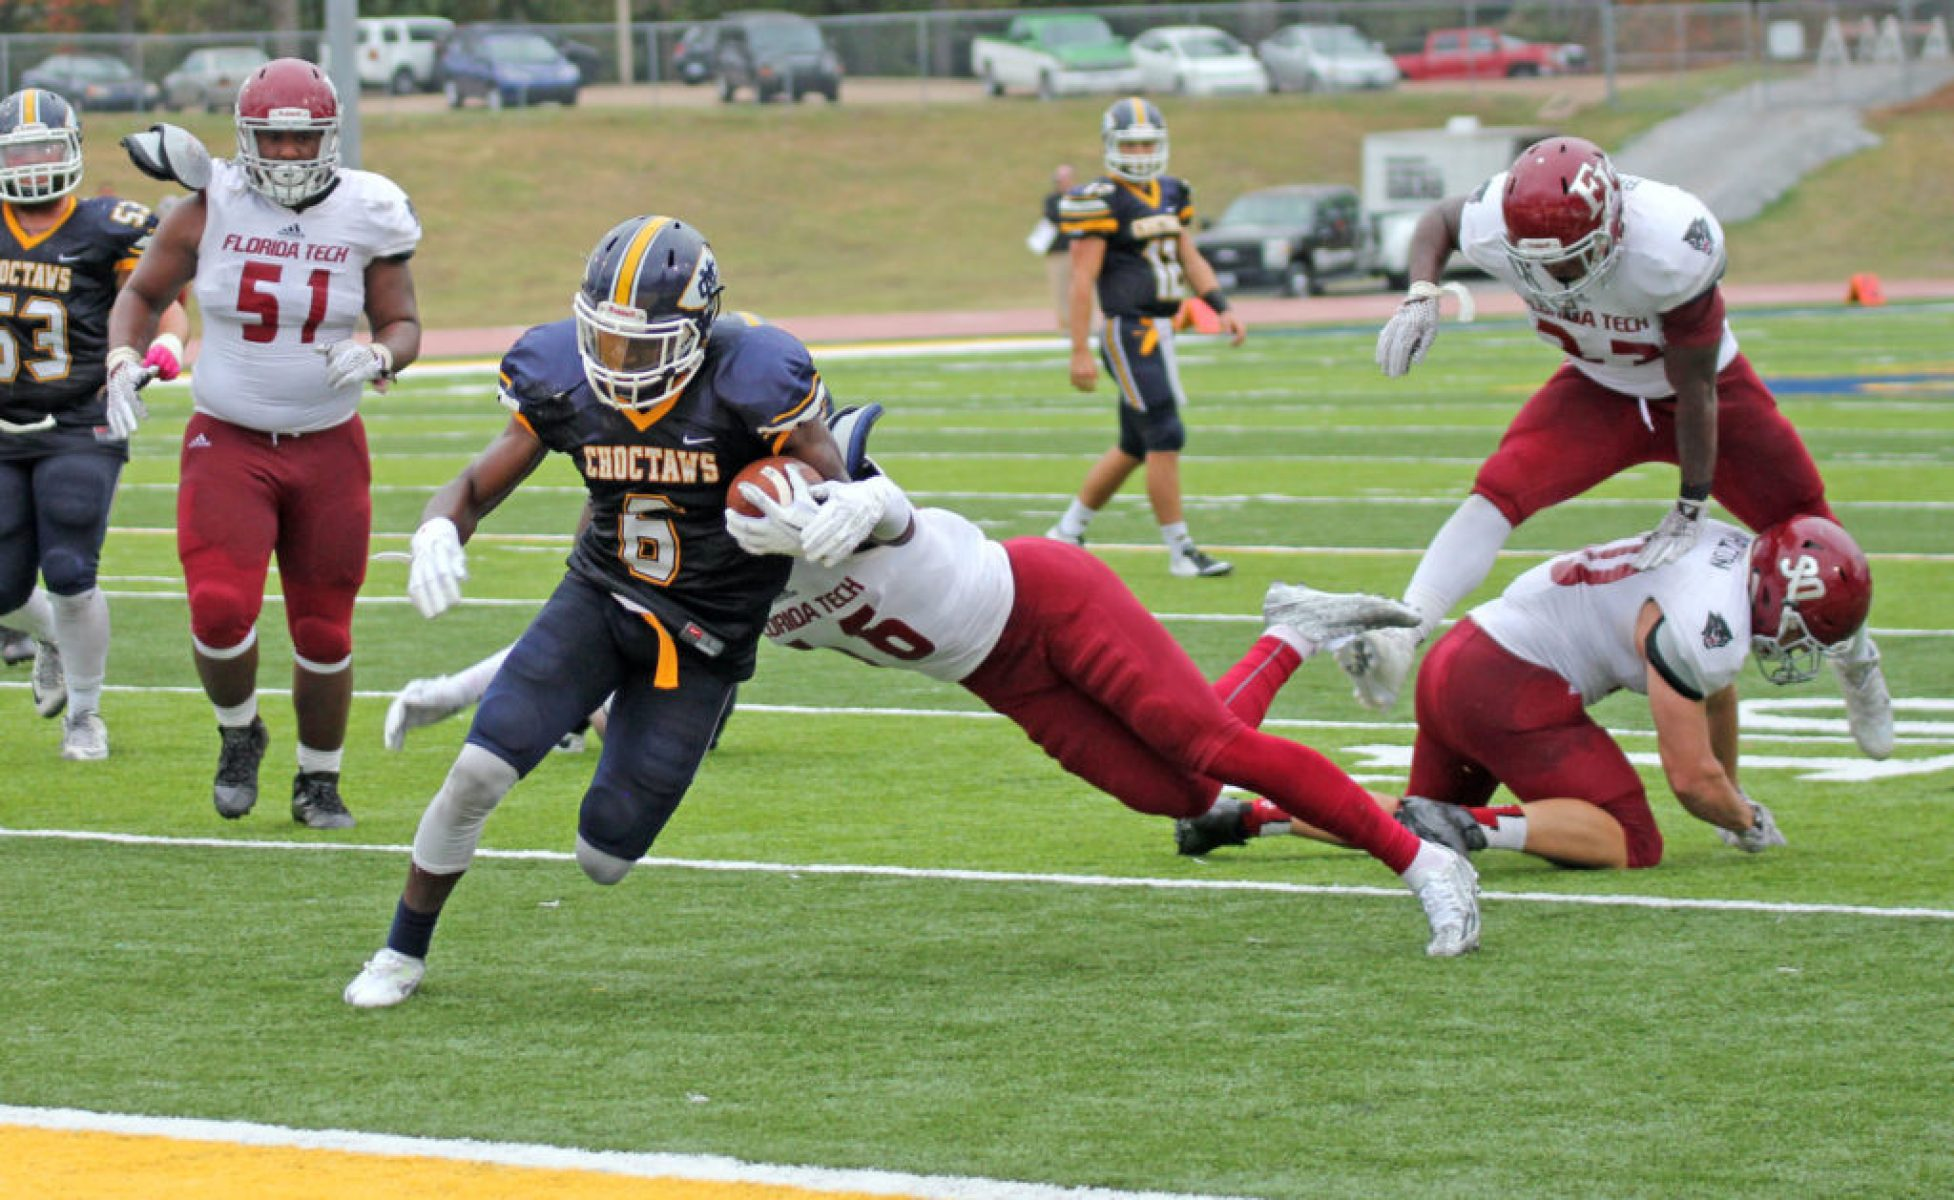 Marcel Newson, C Spire Conerly Trophy finalist, scores for the Choctaws.